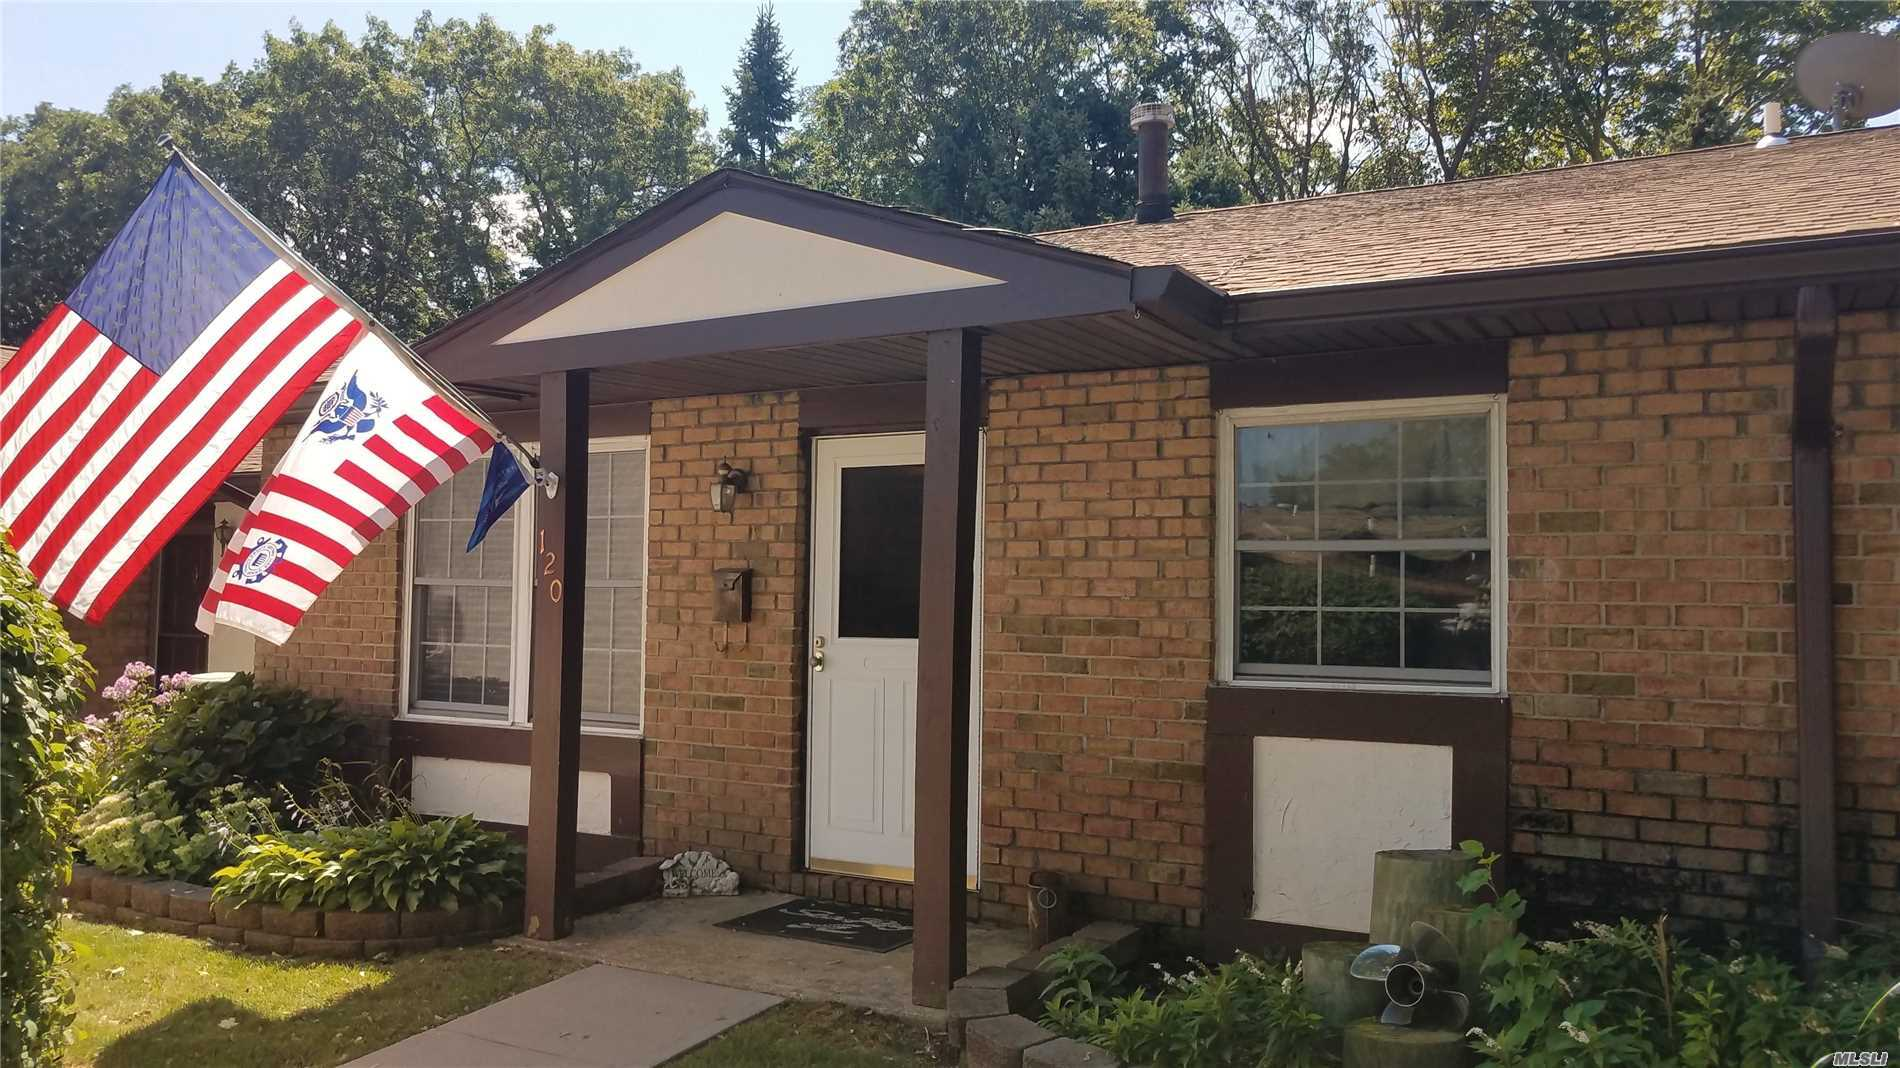 Property for sale at 120 Greenmeadow Dr, Deer Park,  NY 11729